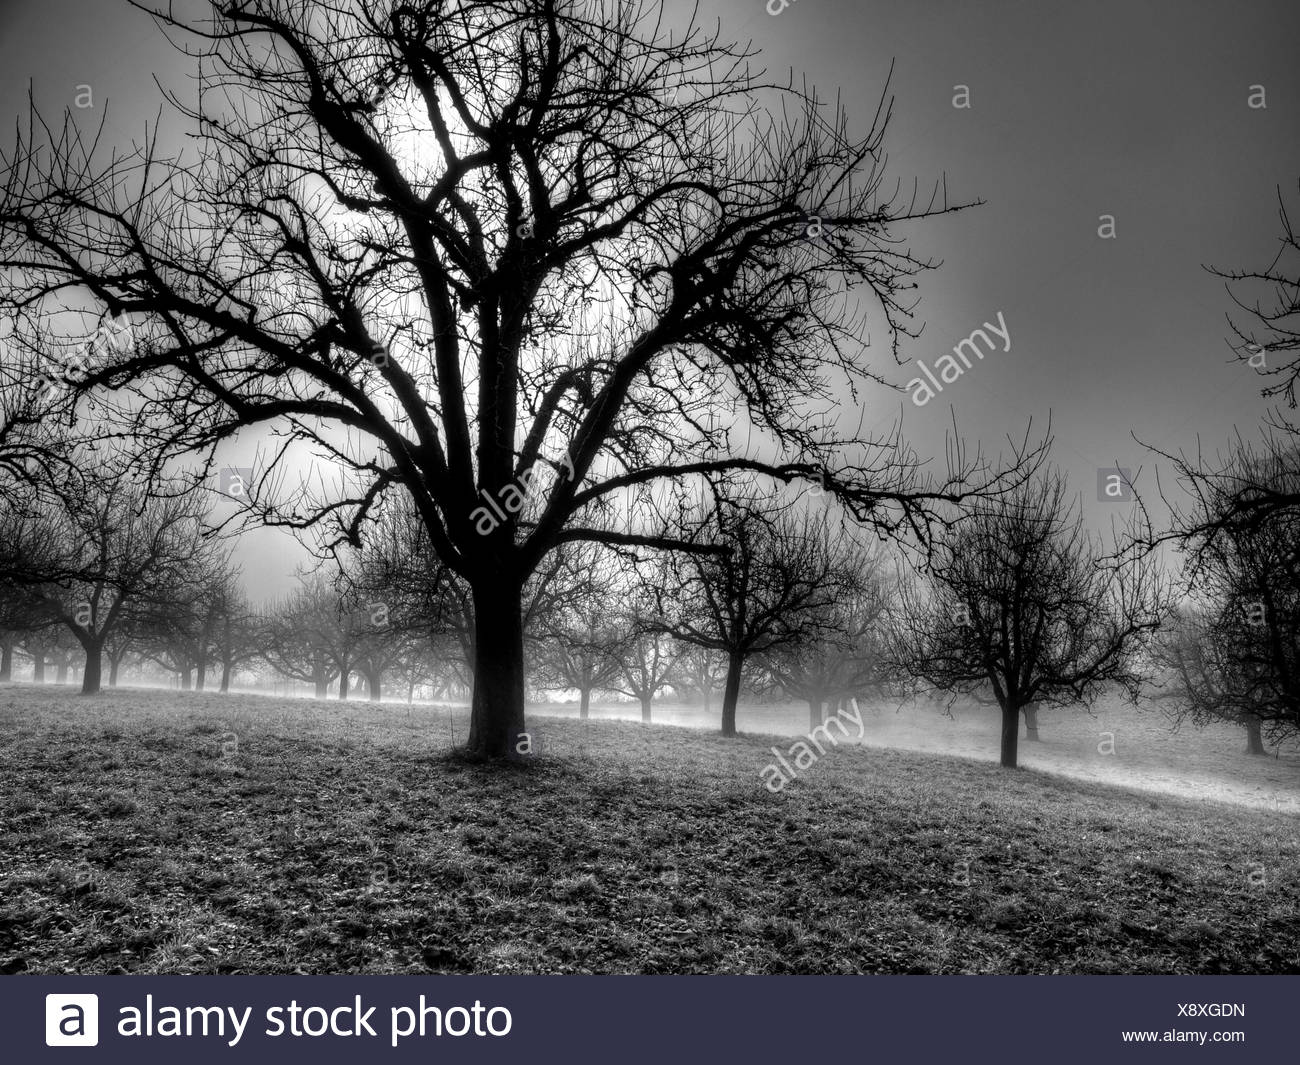 Switzerland, Europe, canton Zurich, trees, fruit-trees, fog, autumn, grief, - Stock Image